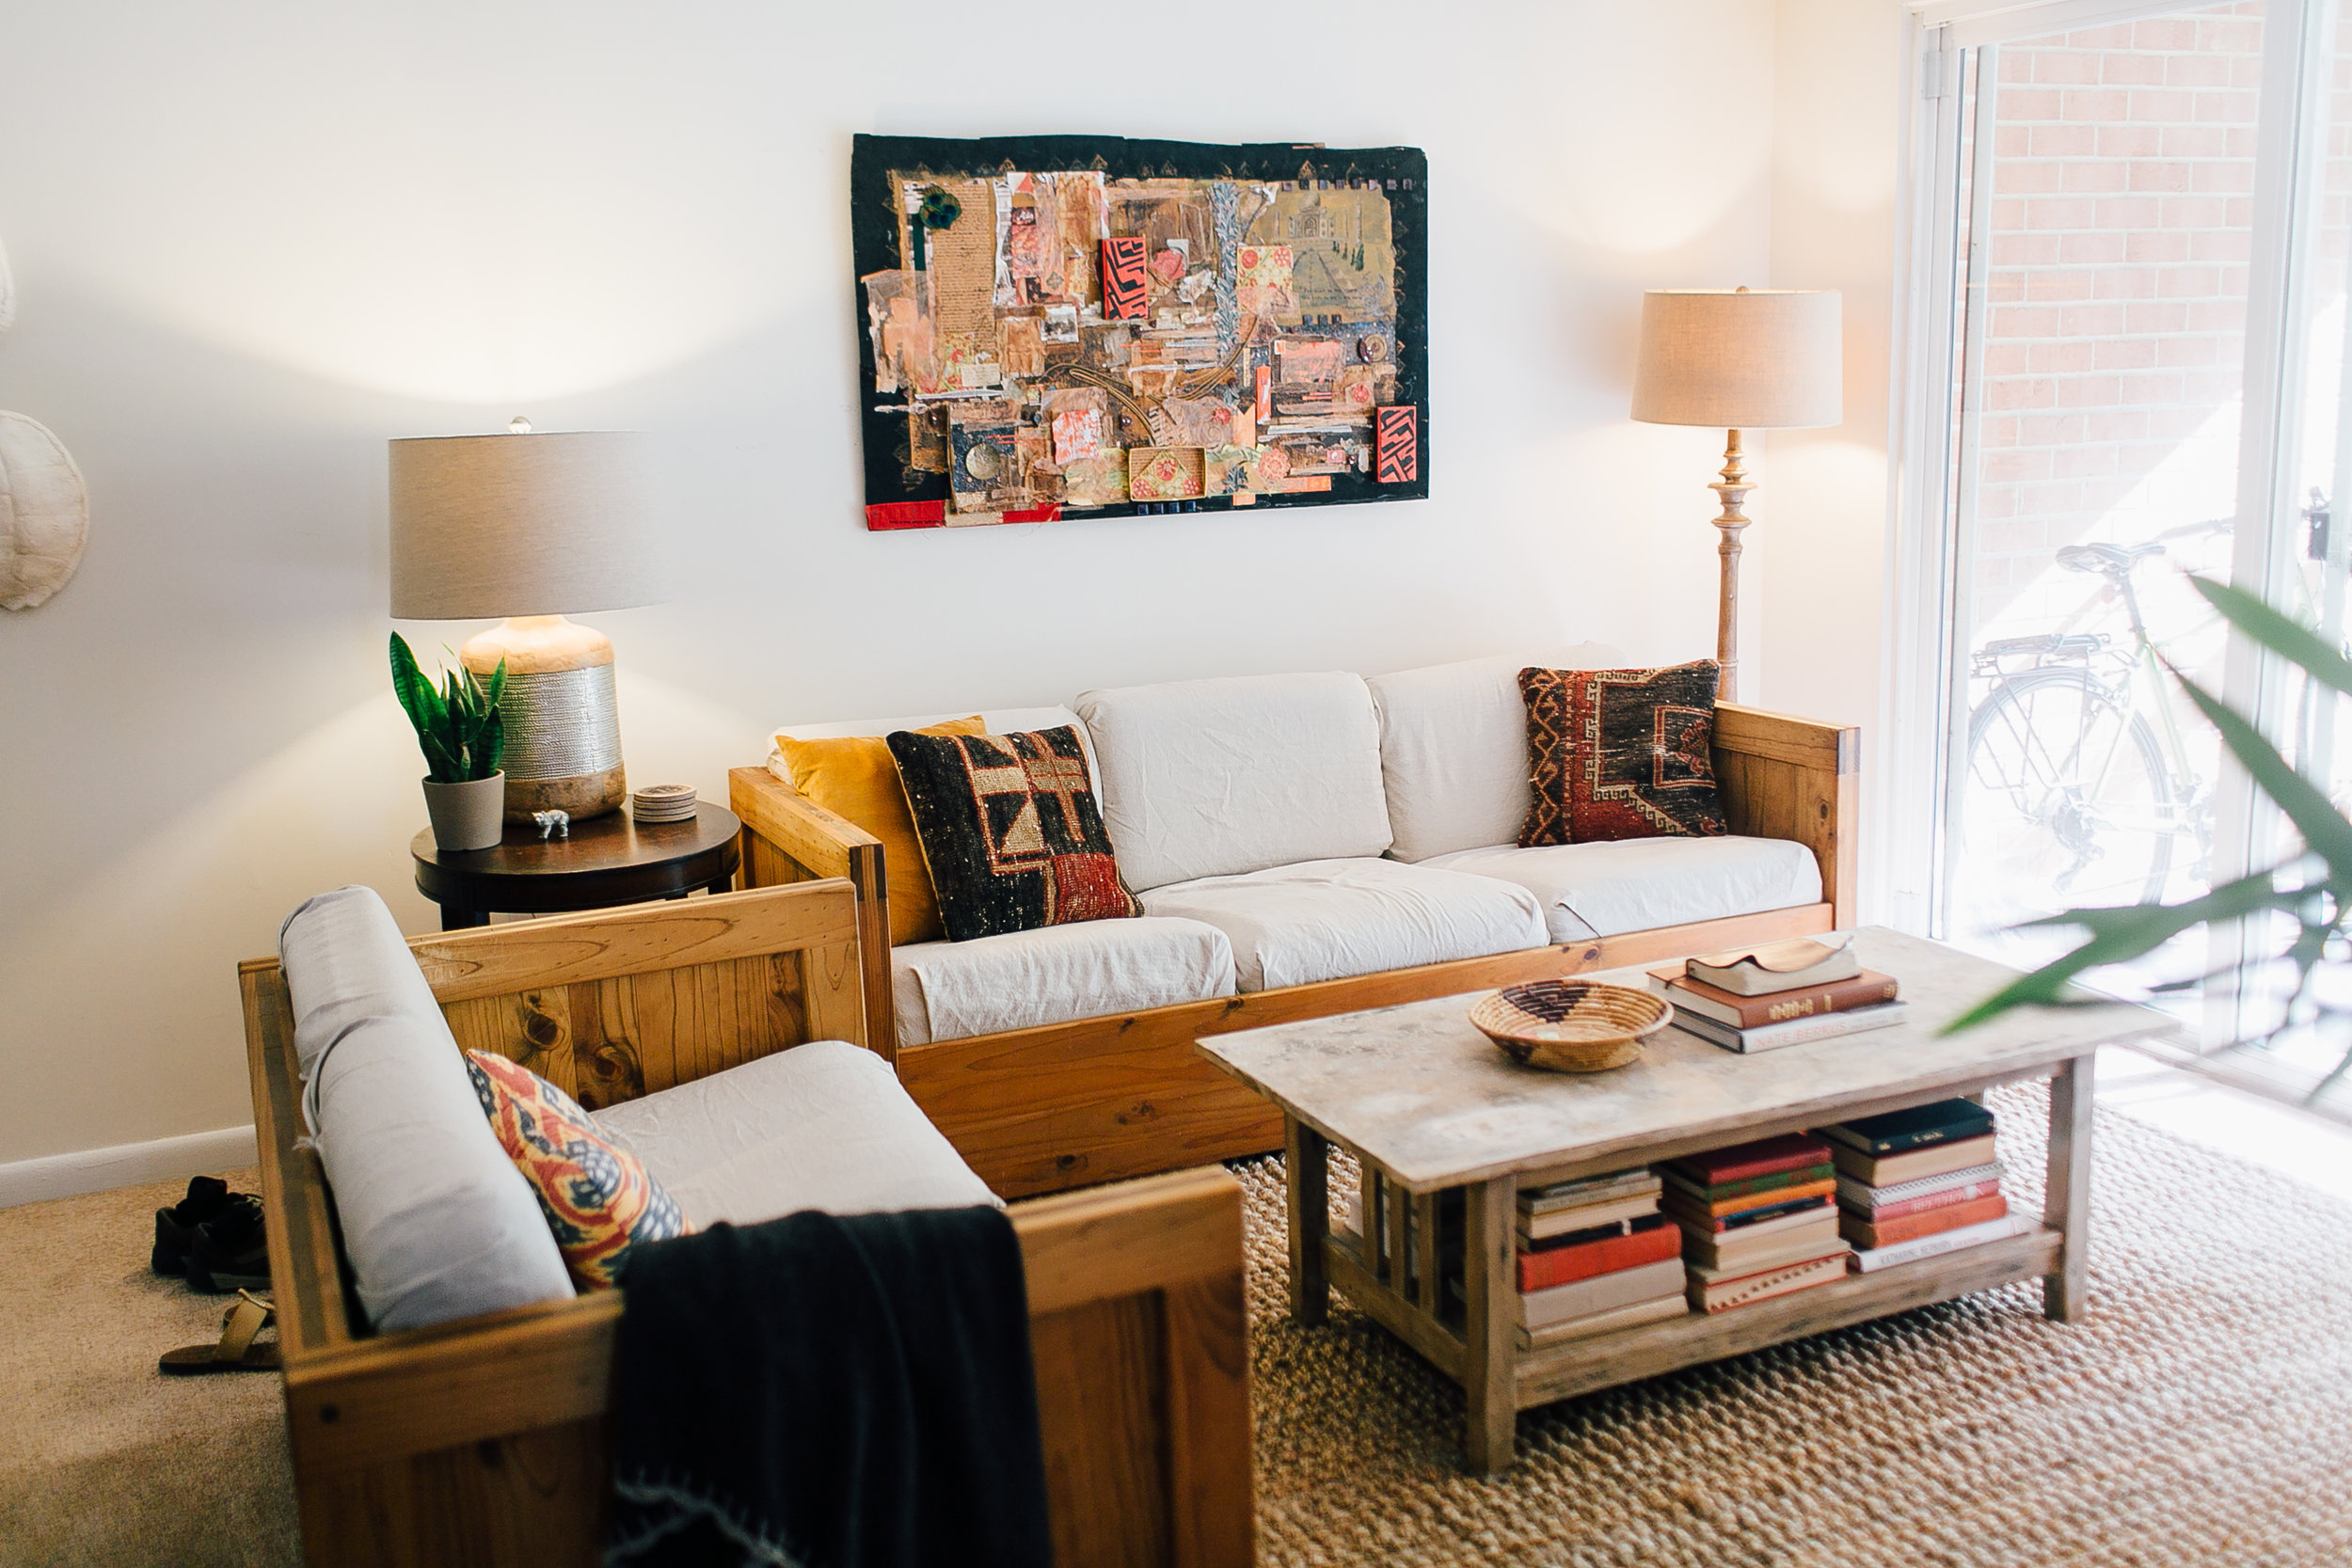 How to Make a Small Space Feel Larger - MRFP 01.jpg